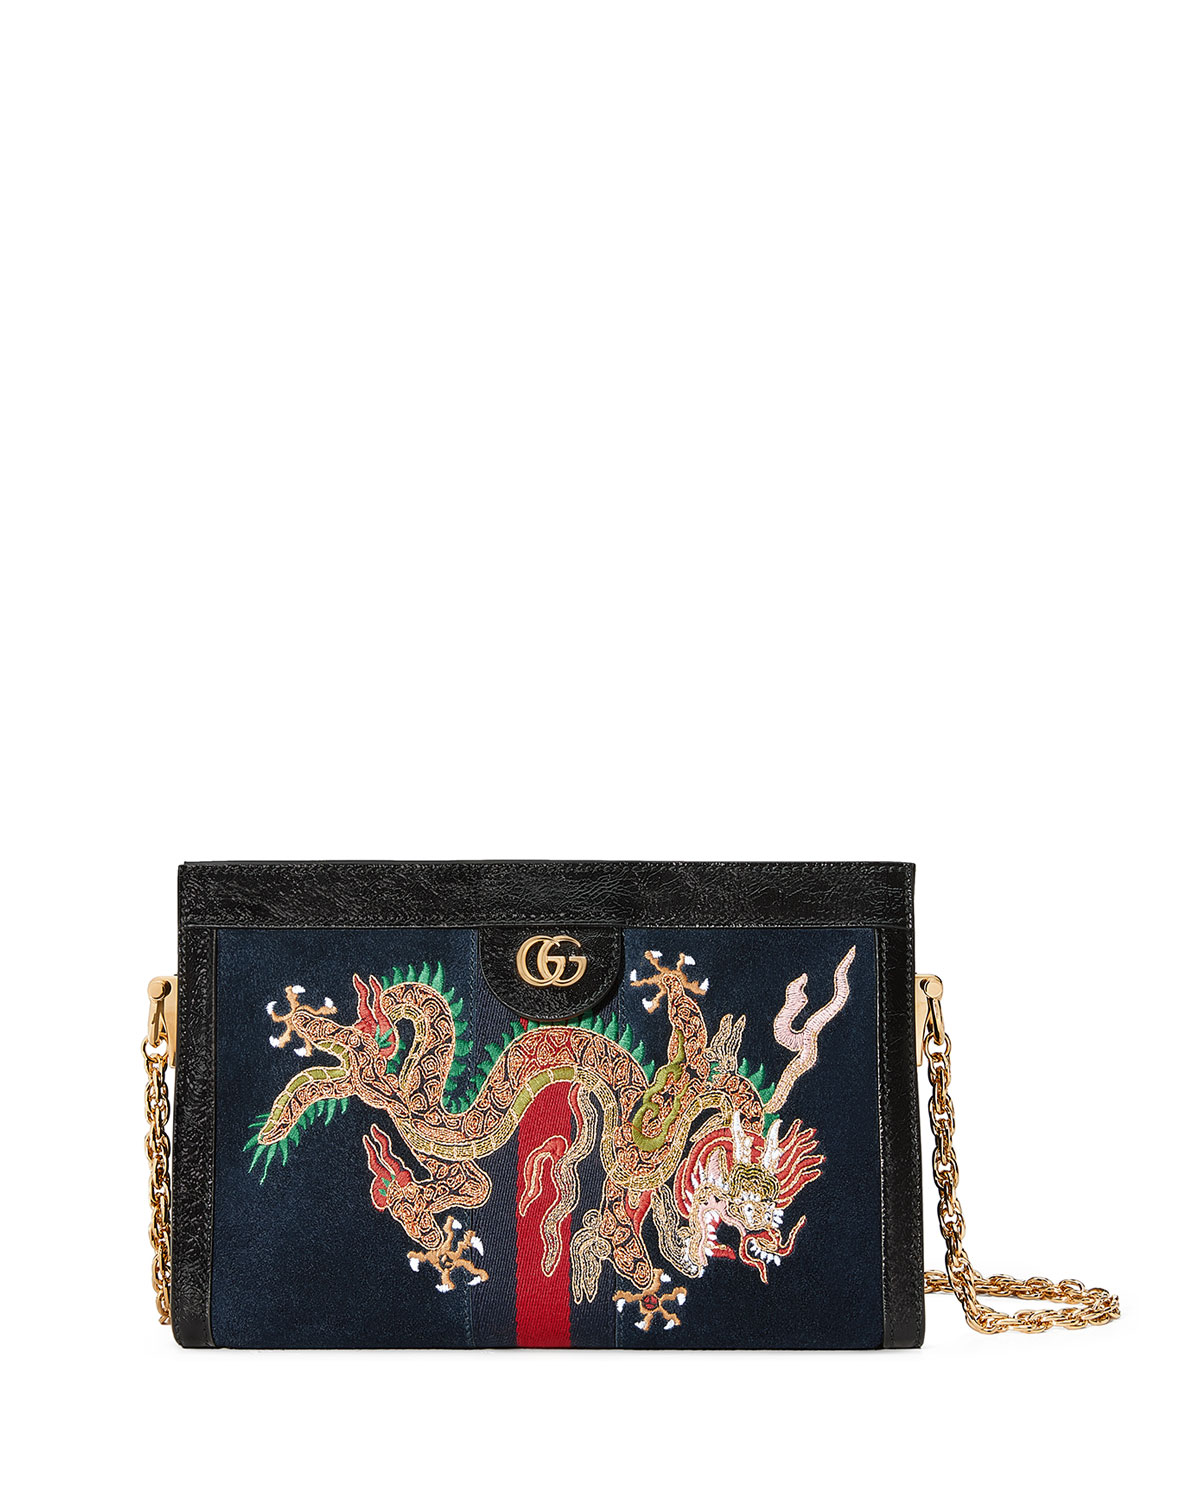 59386d7dc55 Gucci Linea Dragoni Embroidered Small Chain Shoulder Bag